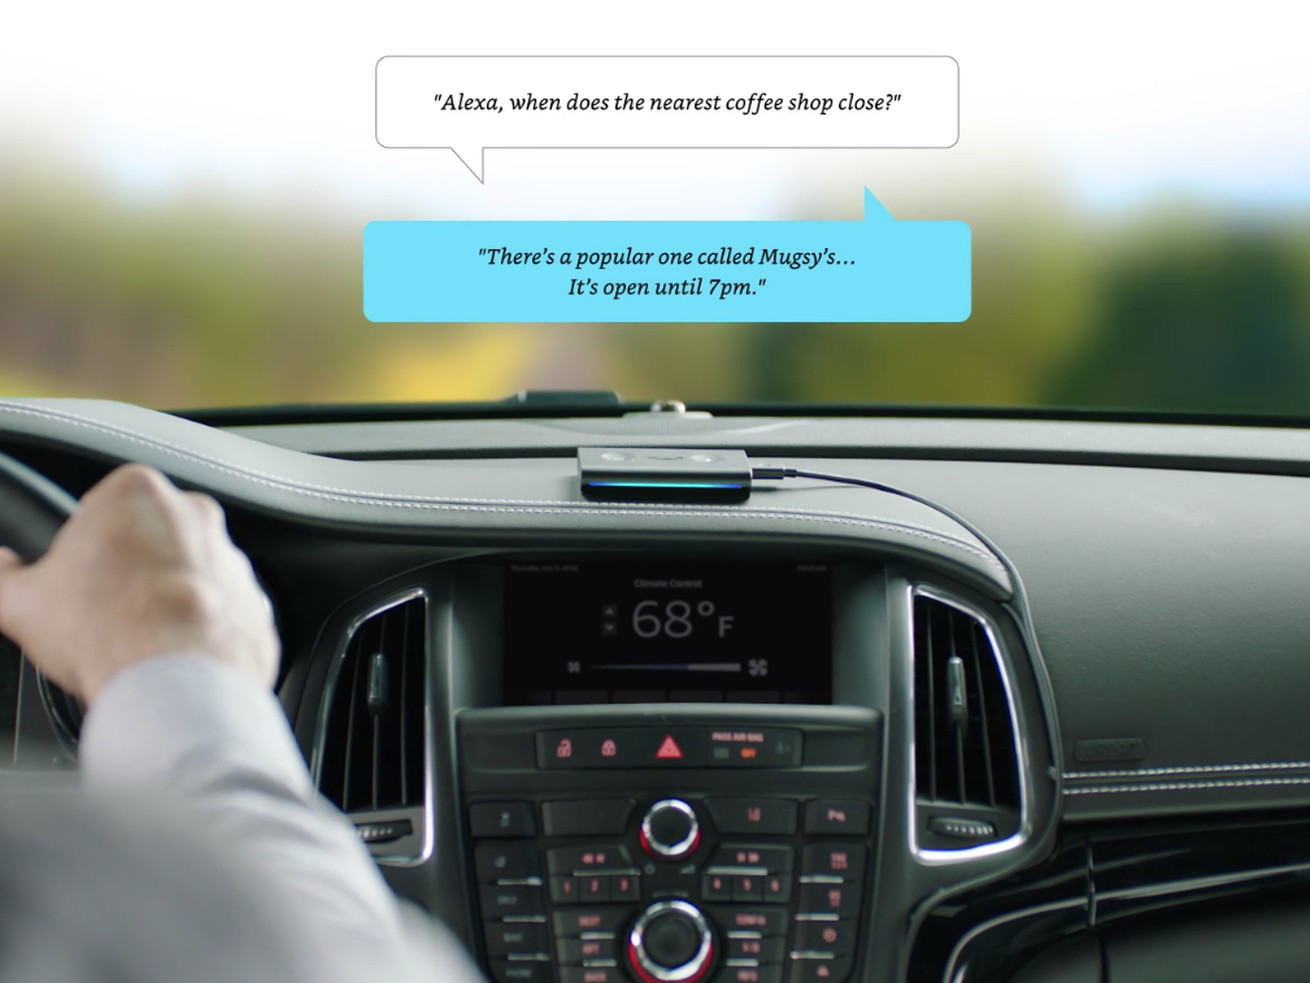 The future of voice assistants like Alexa and Siri isn't just in homes — it's in cars